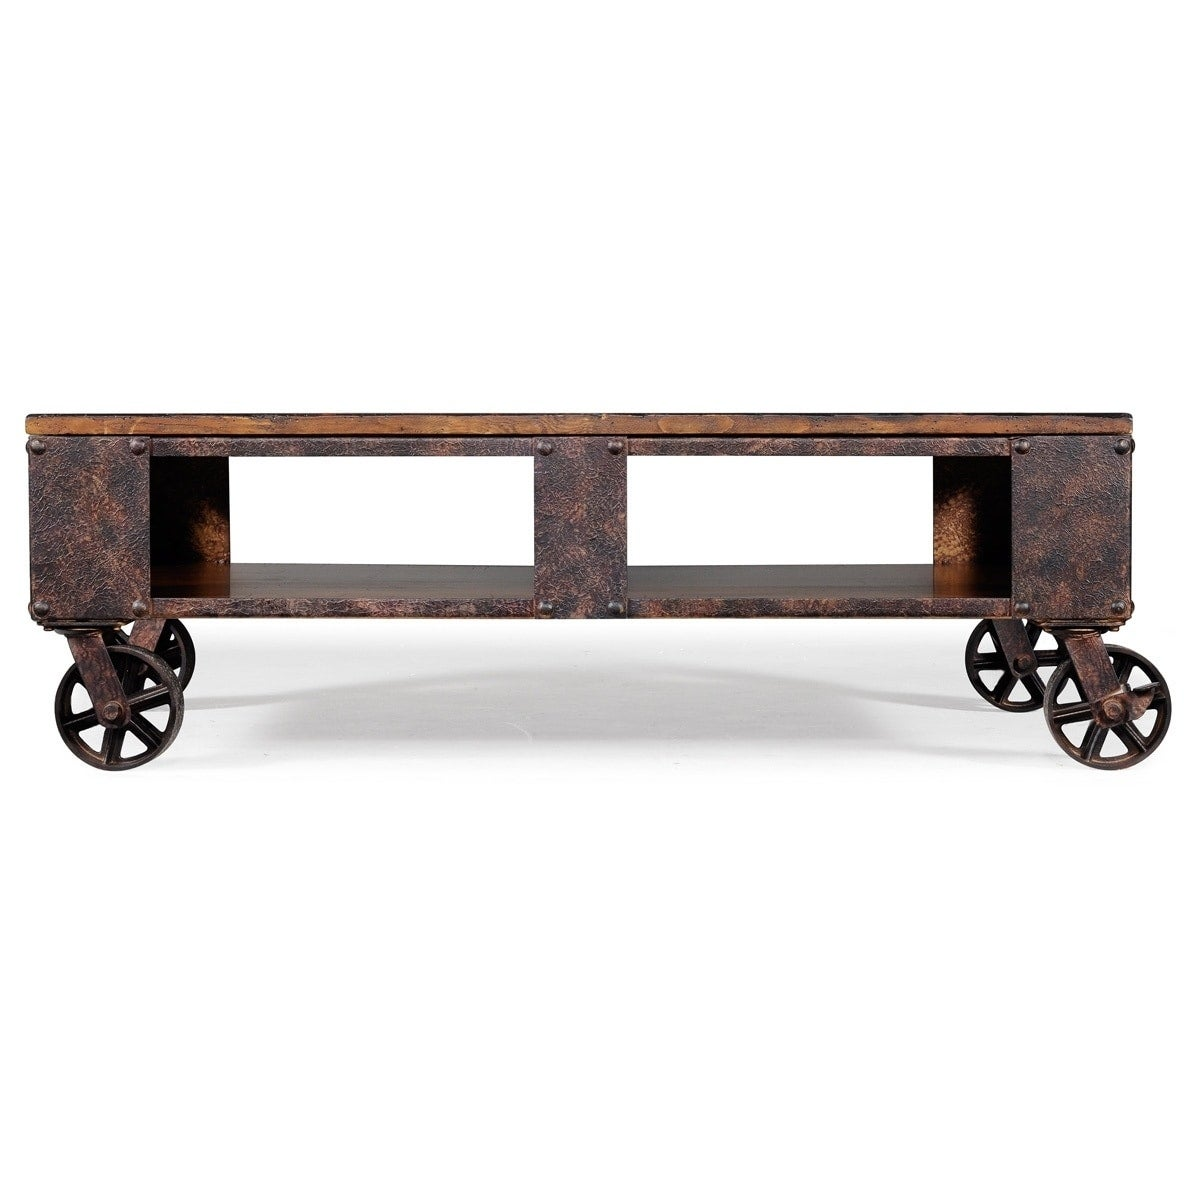 Shop Oliver James Canova Distressed Pine Wood Coffee Table On - Overstock wood coffee table